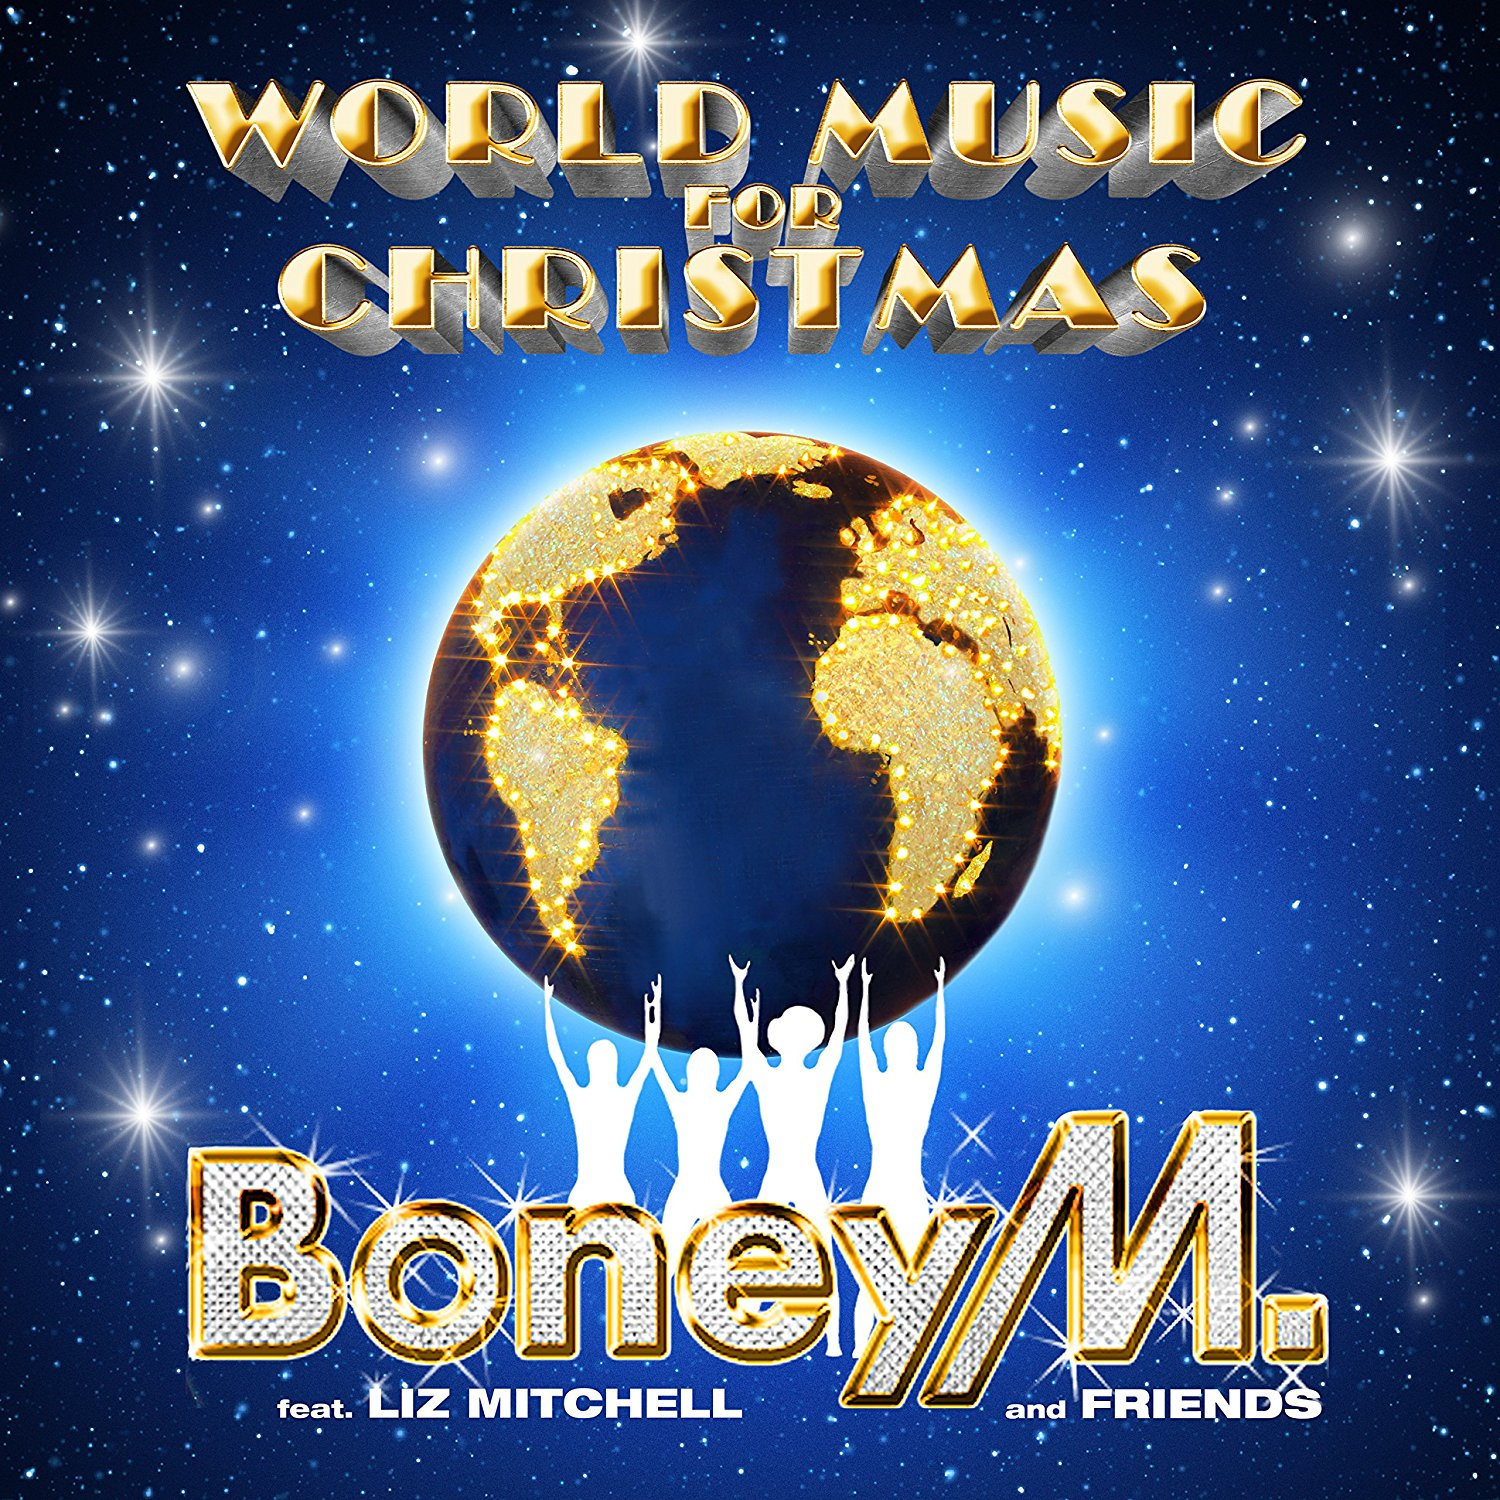 09/12/2017 Boney M. World Music For Christmas (iTines Chart) 1